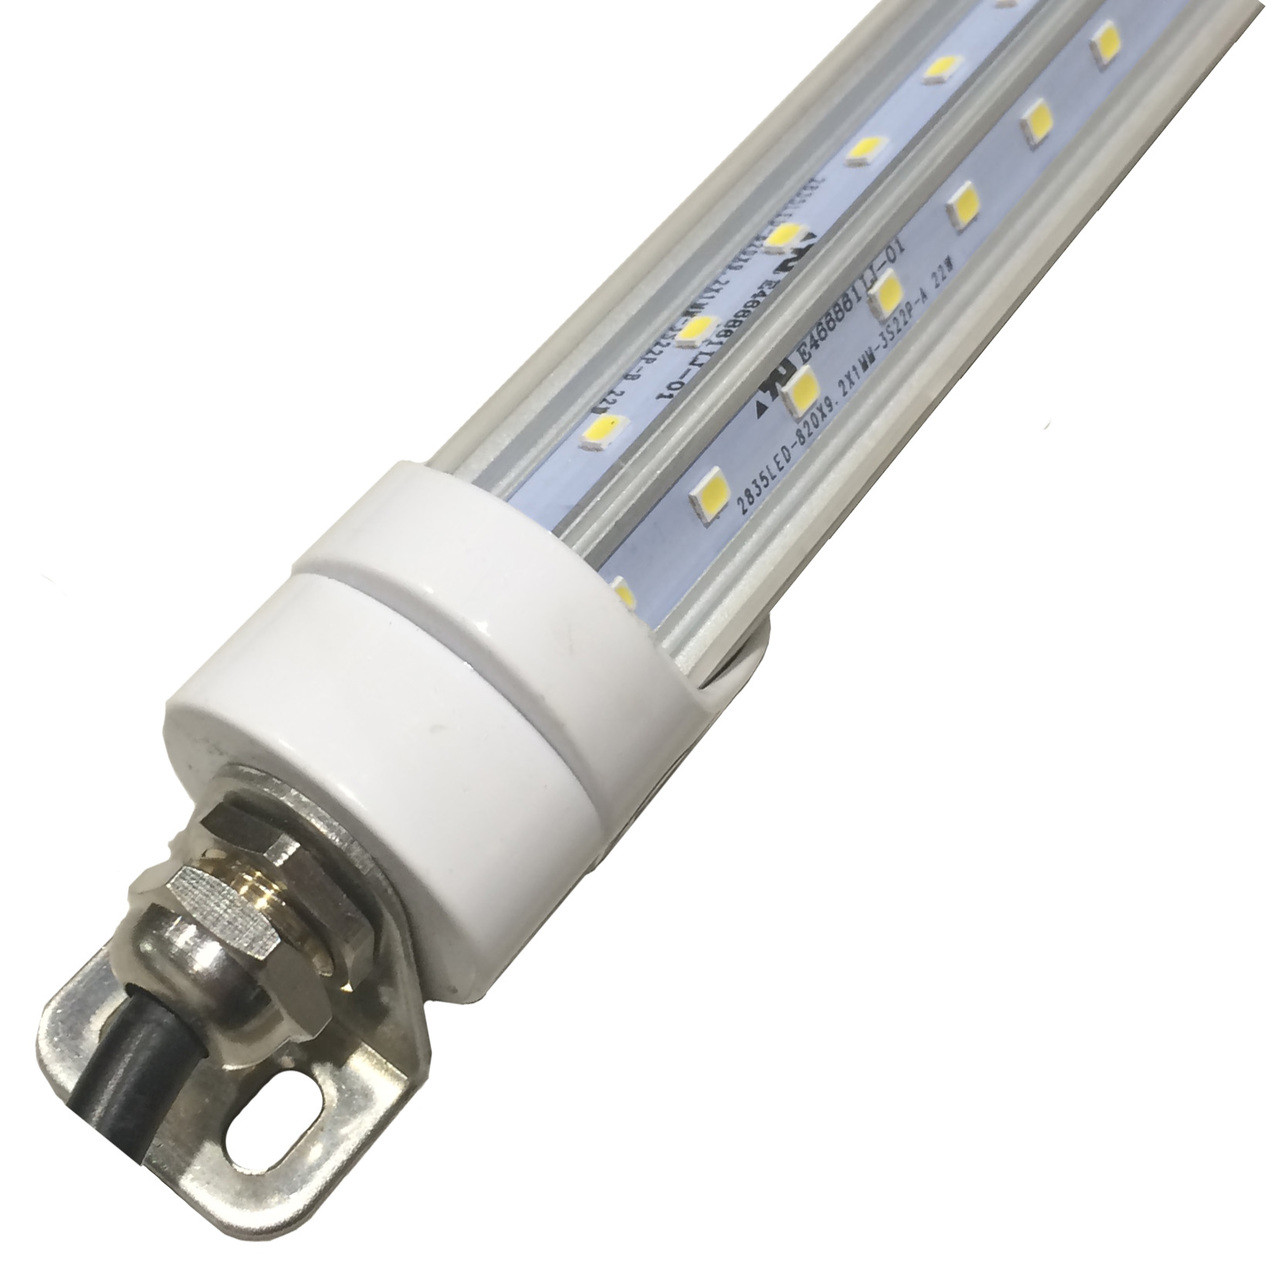 4 Foot Led Lights >> T8 Led Freezer Cooler Six Foot Tube To Replace Florescent S